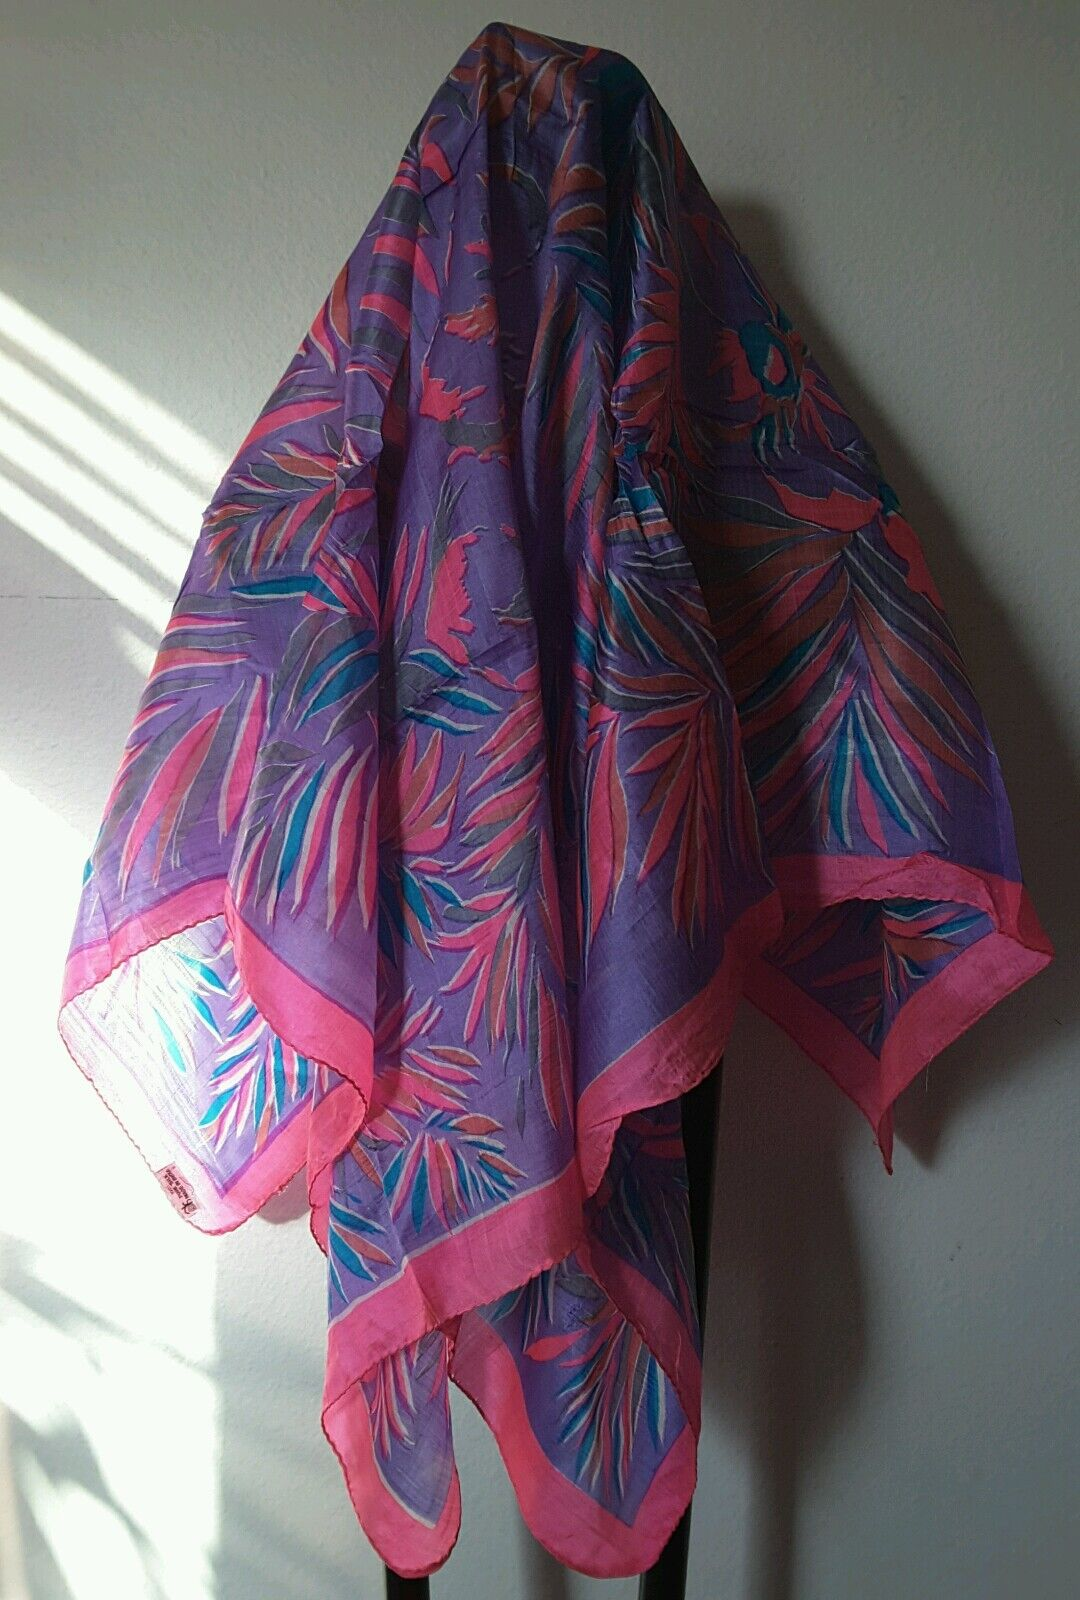 Nwt vtg 80s Pink Large silk scarf Miami colors golden girls, floral 90s India L